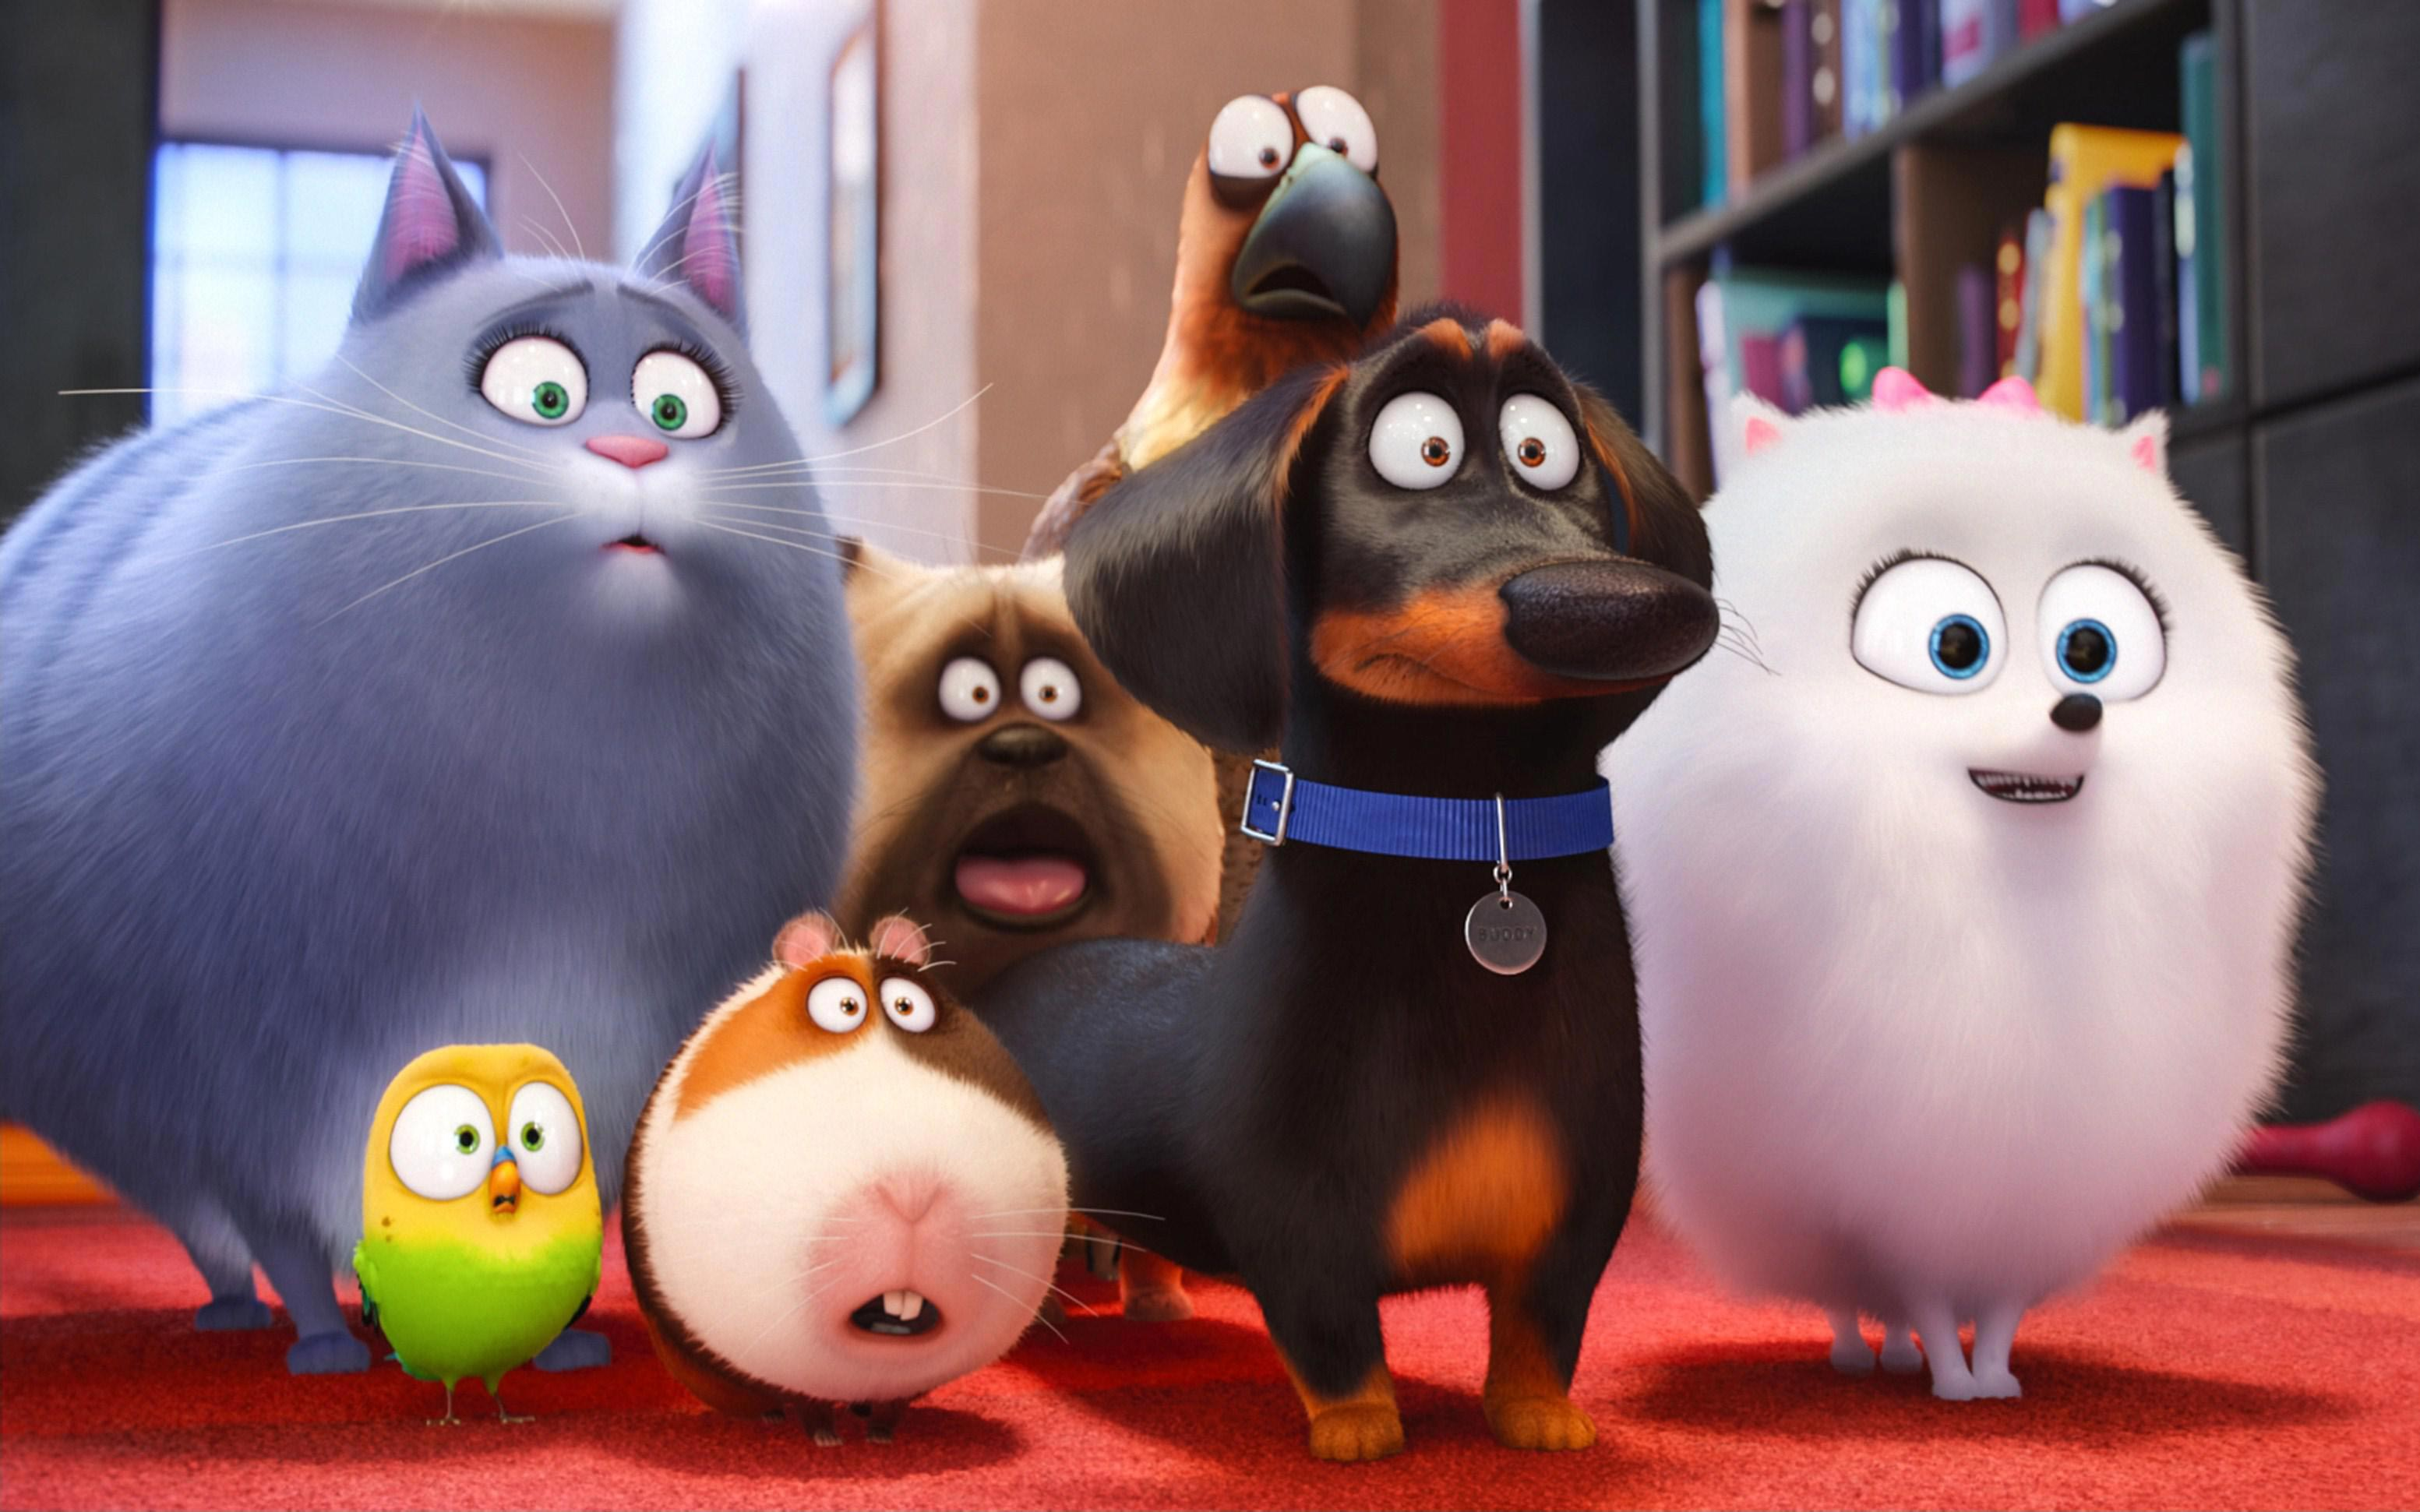 The Secret Life of Pets 2 HD Wallpapers | 7wallpapers.net